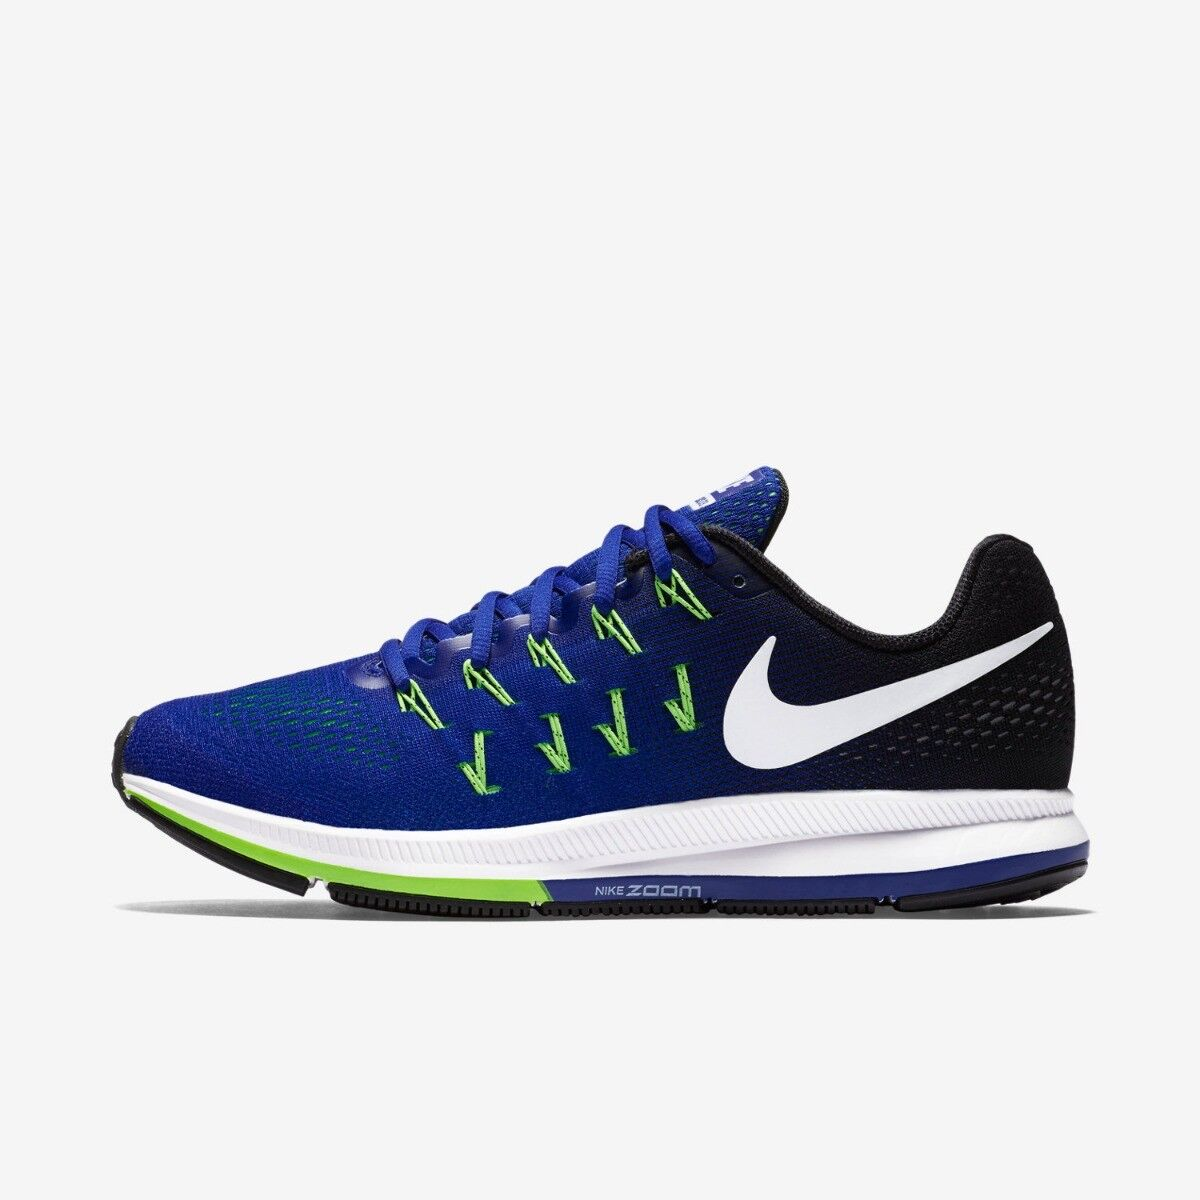 Nike Air Zoom Pegasus 33 Concord running blanc homme running Concord Trainer Chaussure taille 7.5 - 10 2f73db